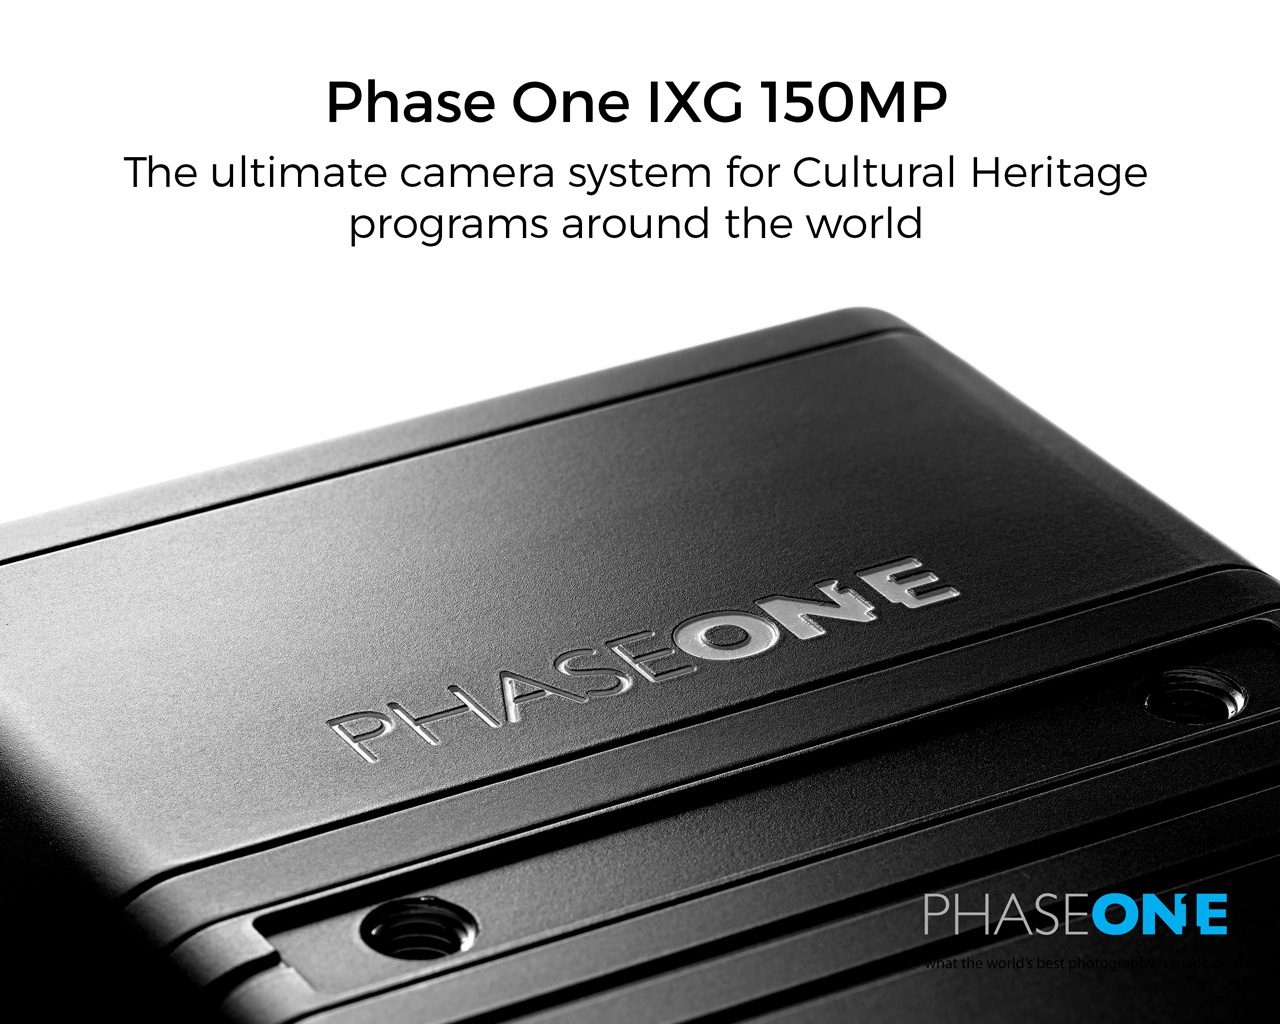 Phase One IXG 150MP for Cultural Heritage